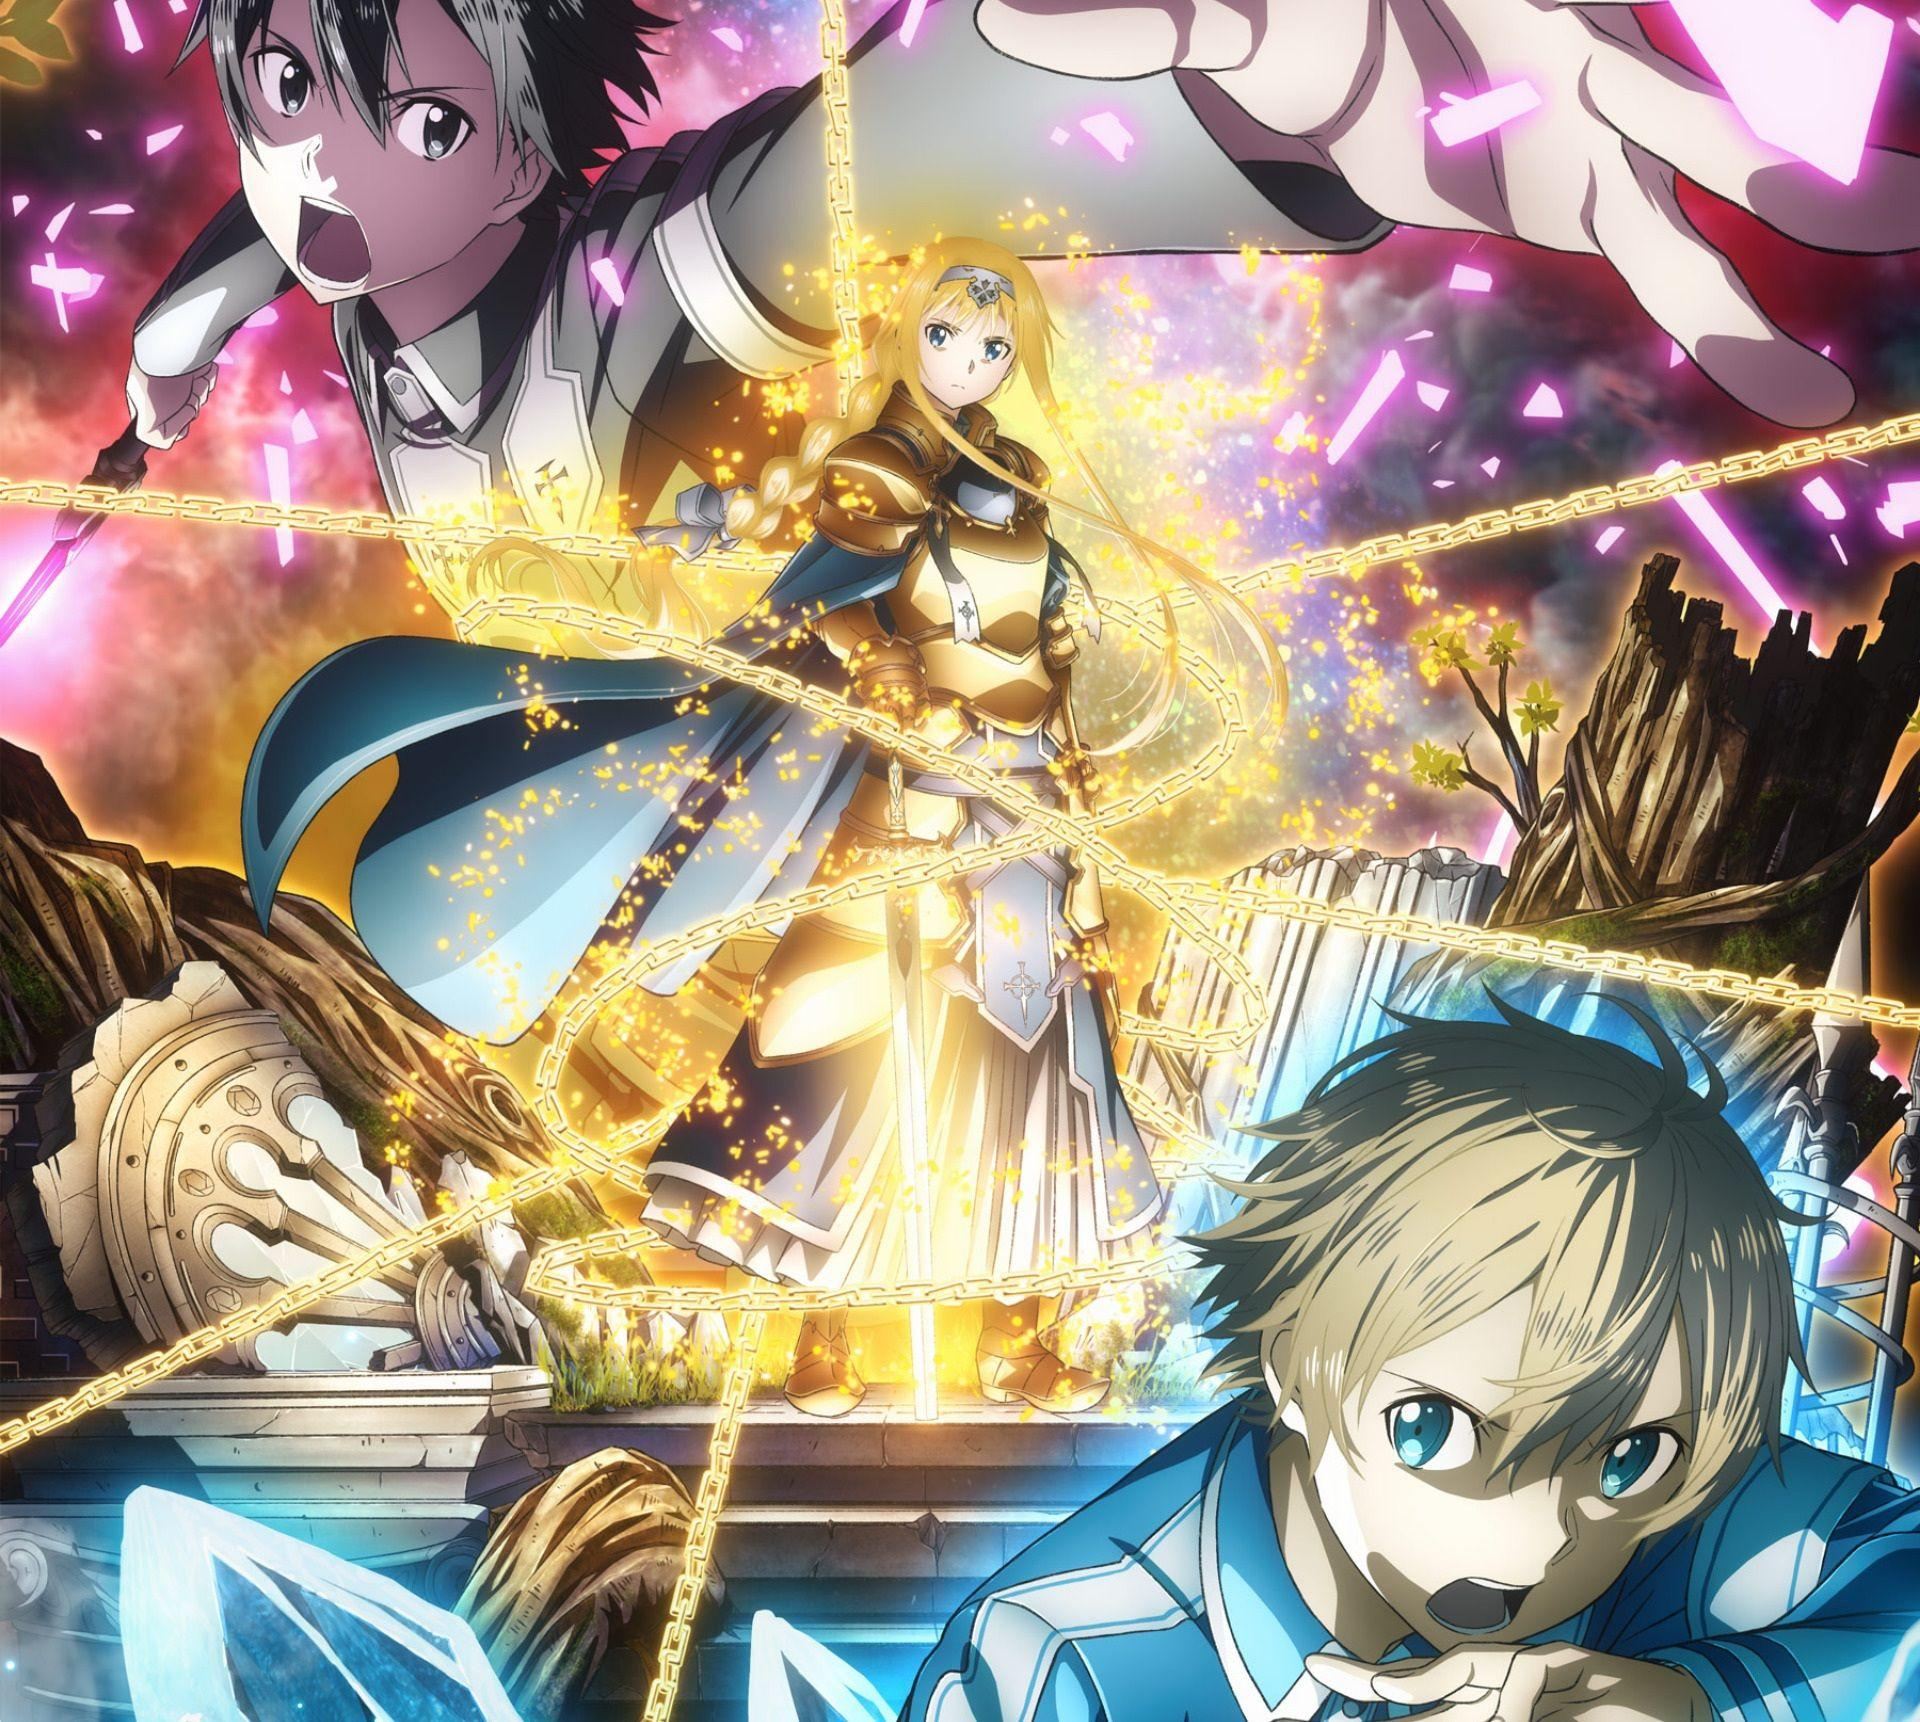 Sword Art Online Alicization Wallpapers Top Free Sword Art Online Alicization Backgrounds Wallpaperaccess